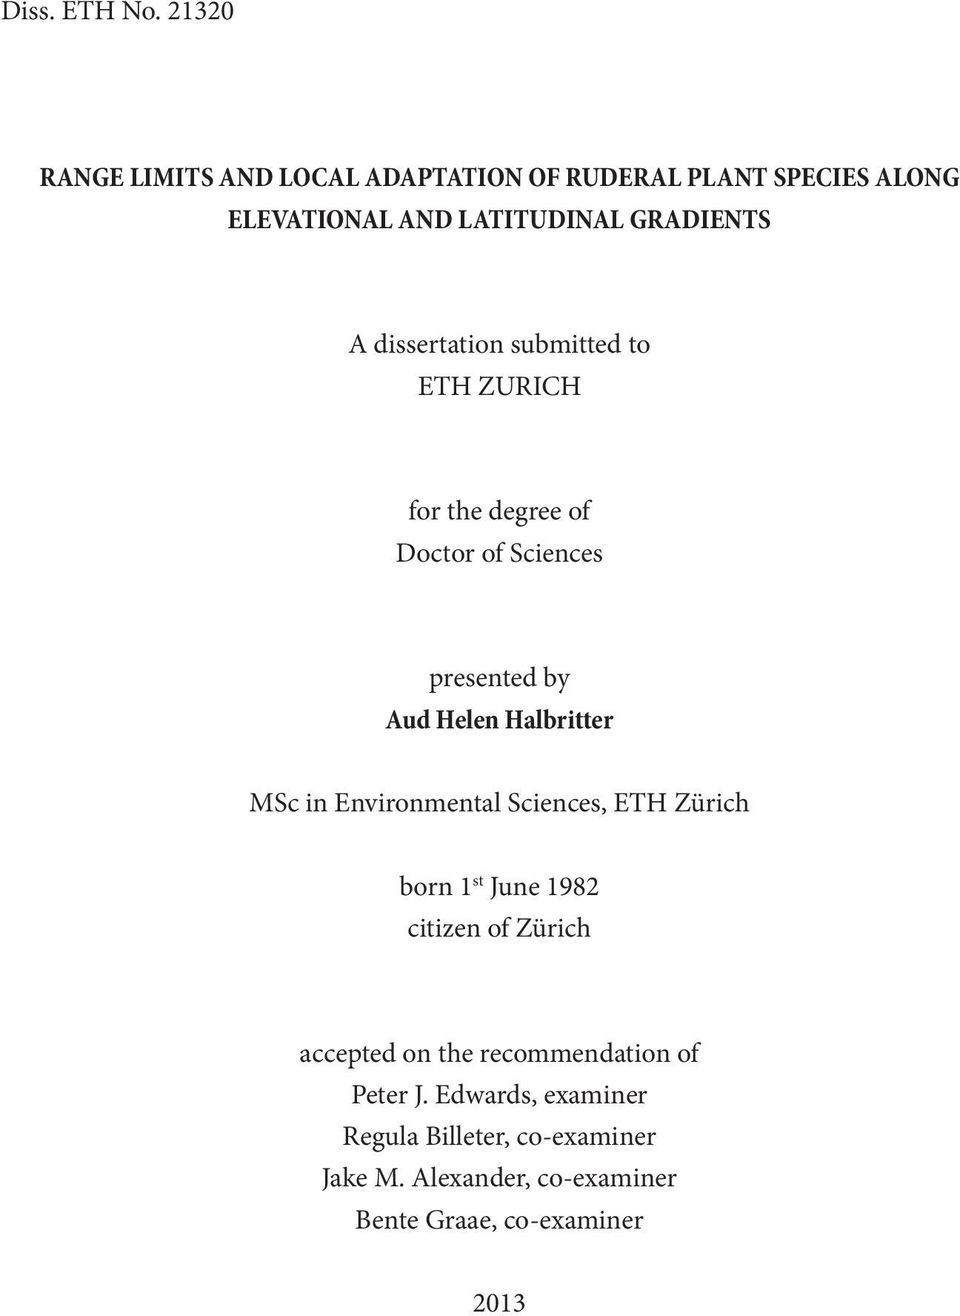 dissertation submitted to ETH ZURICH for the degree of Doctor of Sciences presented by Aud Helen Halbritter MSc in